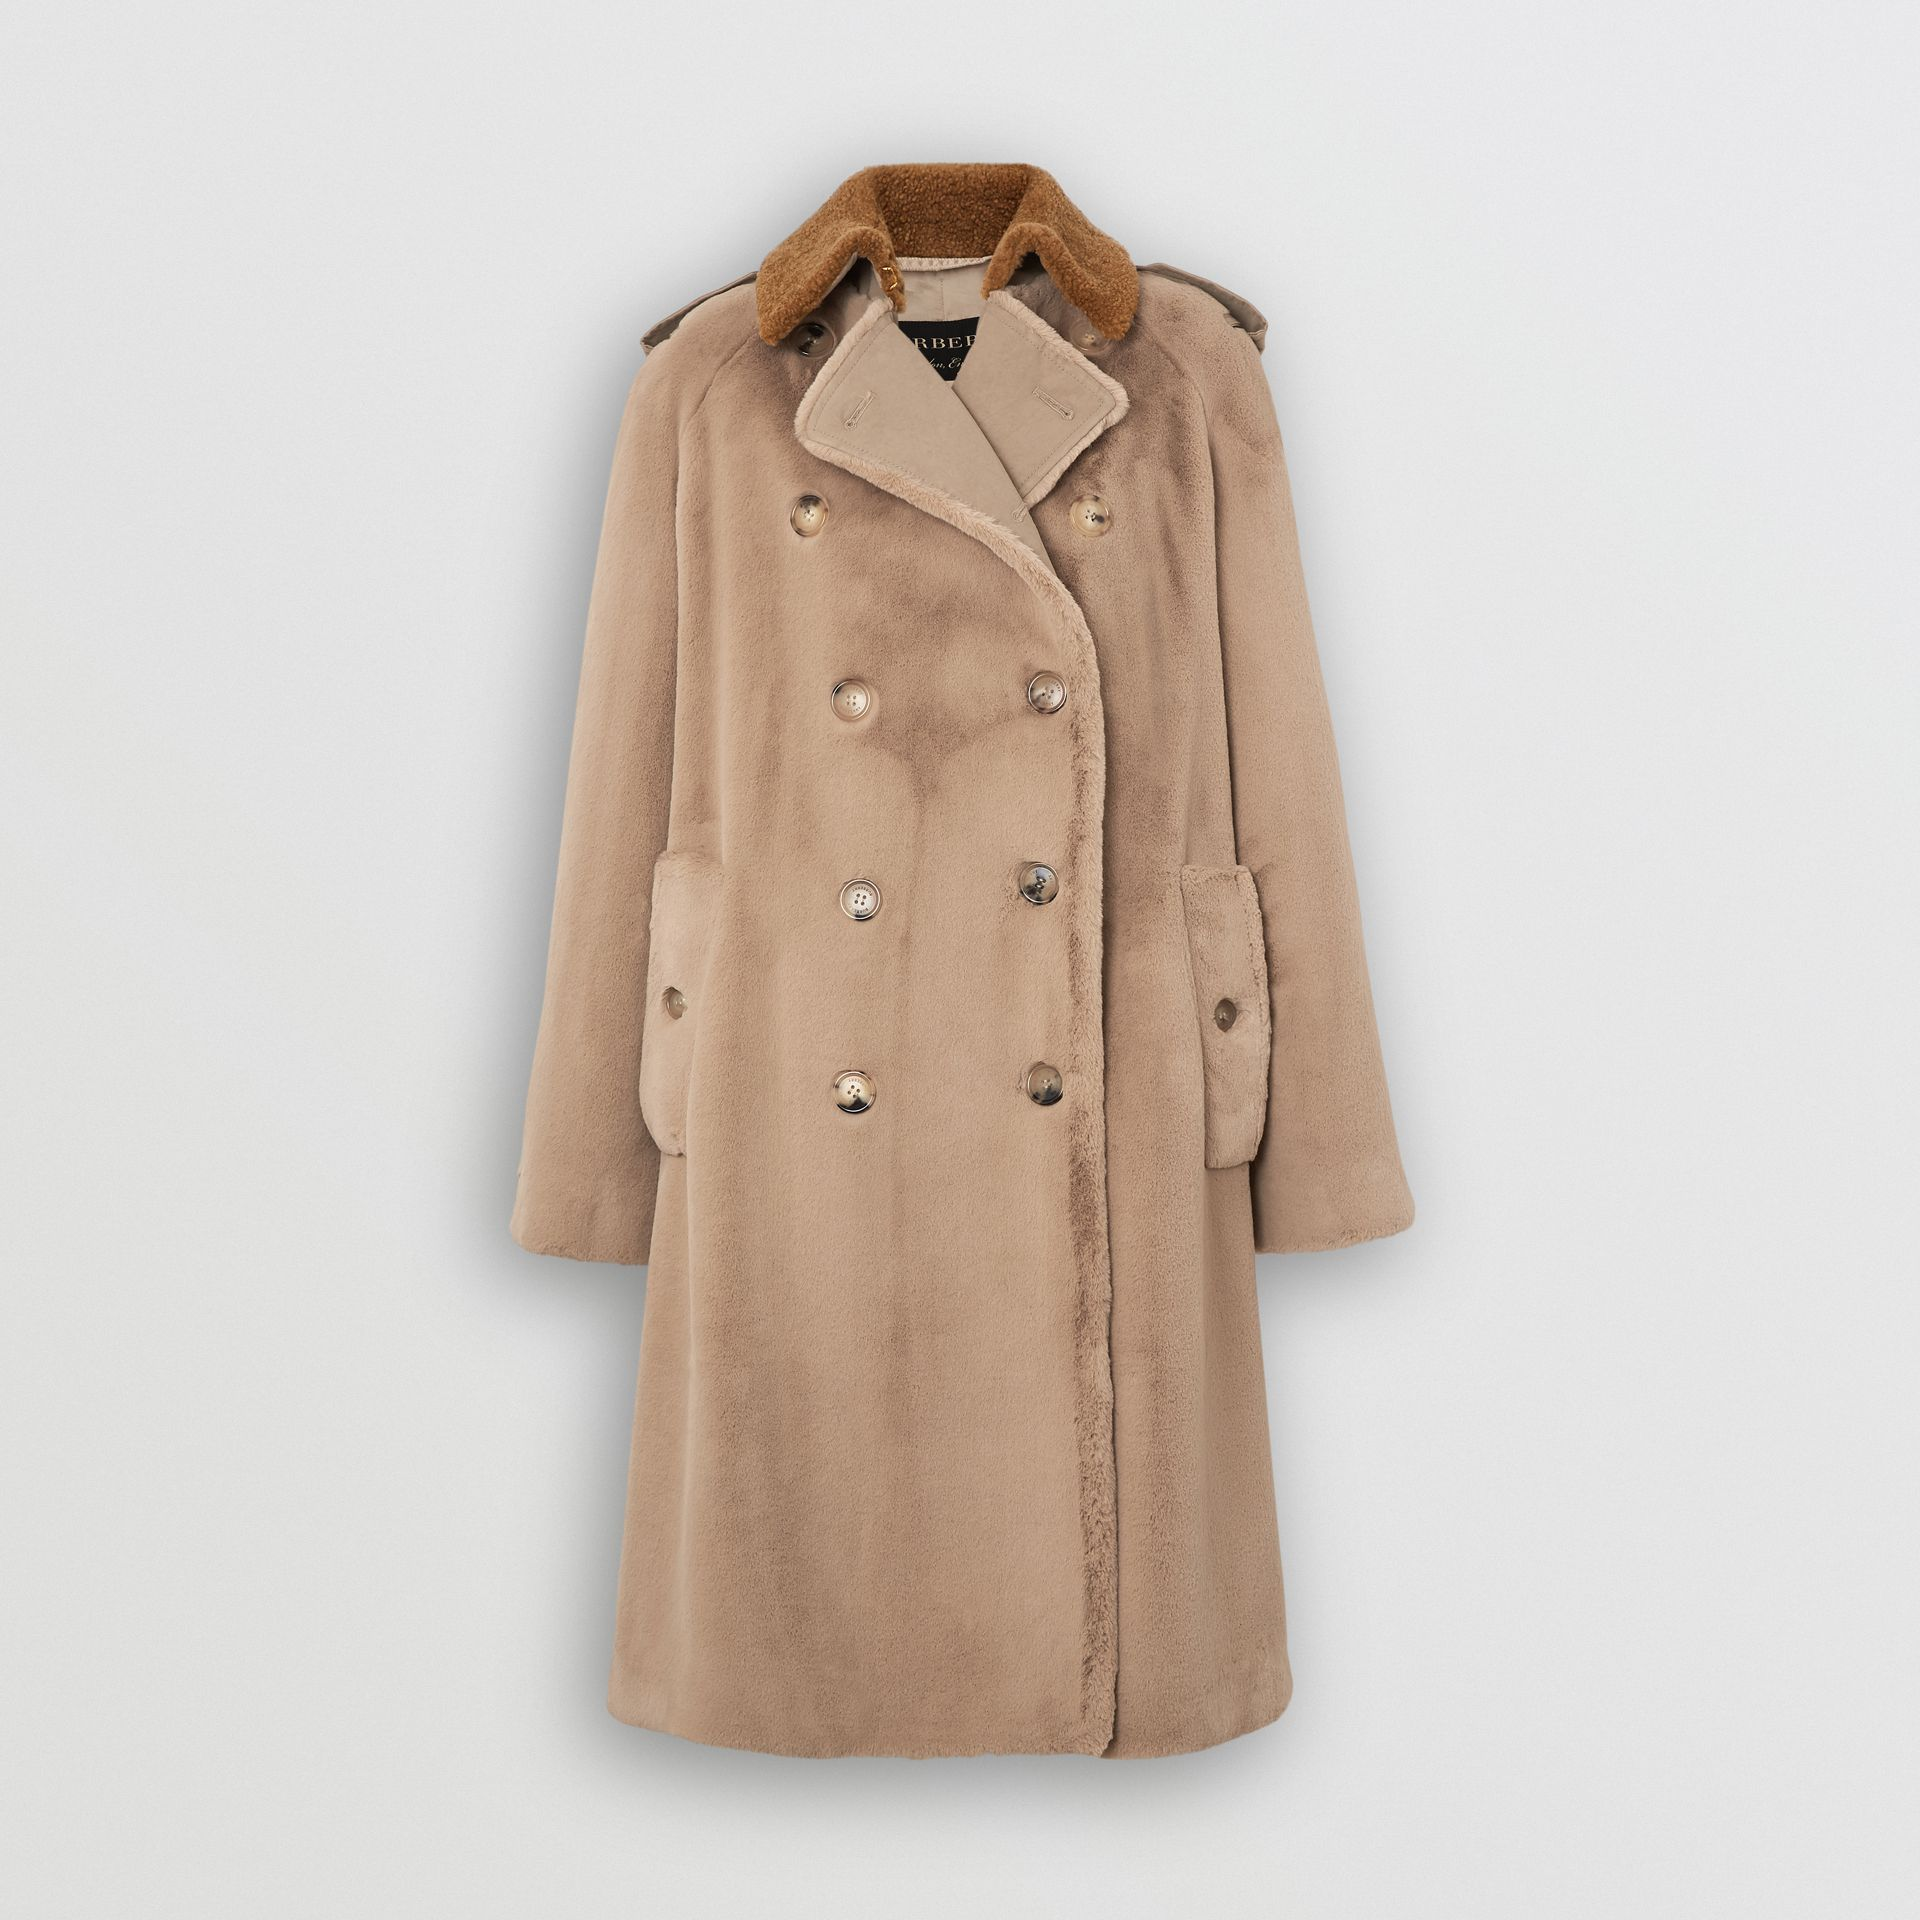 Shearling Trim Faux Fur Trench Coat in Taupe - Women | Burberry United Kingdom - gallery image 3